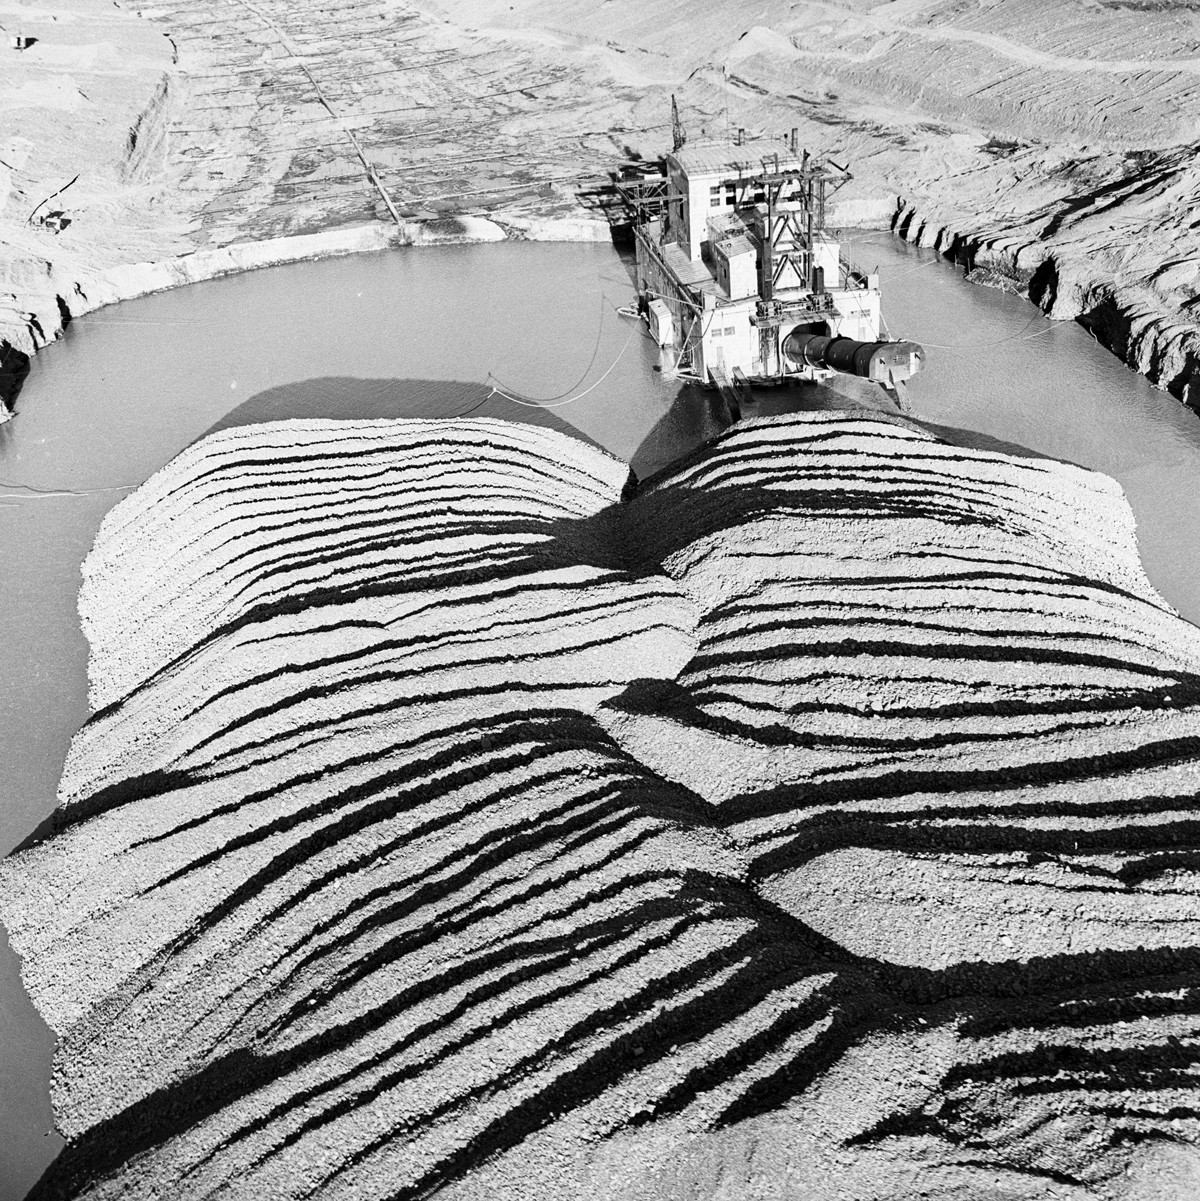 A dredge in the Aliskerov Gold Field near the city of Bilibino on the Kolyma River, Magadan Region, having a processing capacity of several thousand tons of gold dust per day and replacing hundreds of workers. 1964. - -